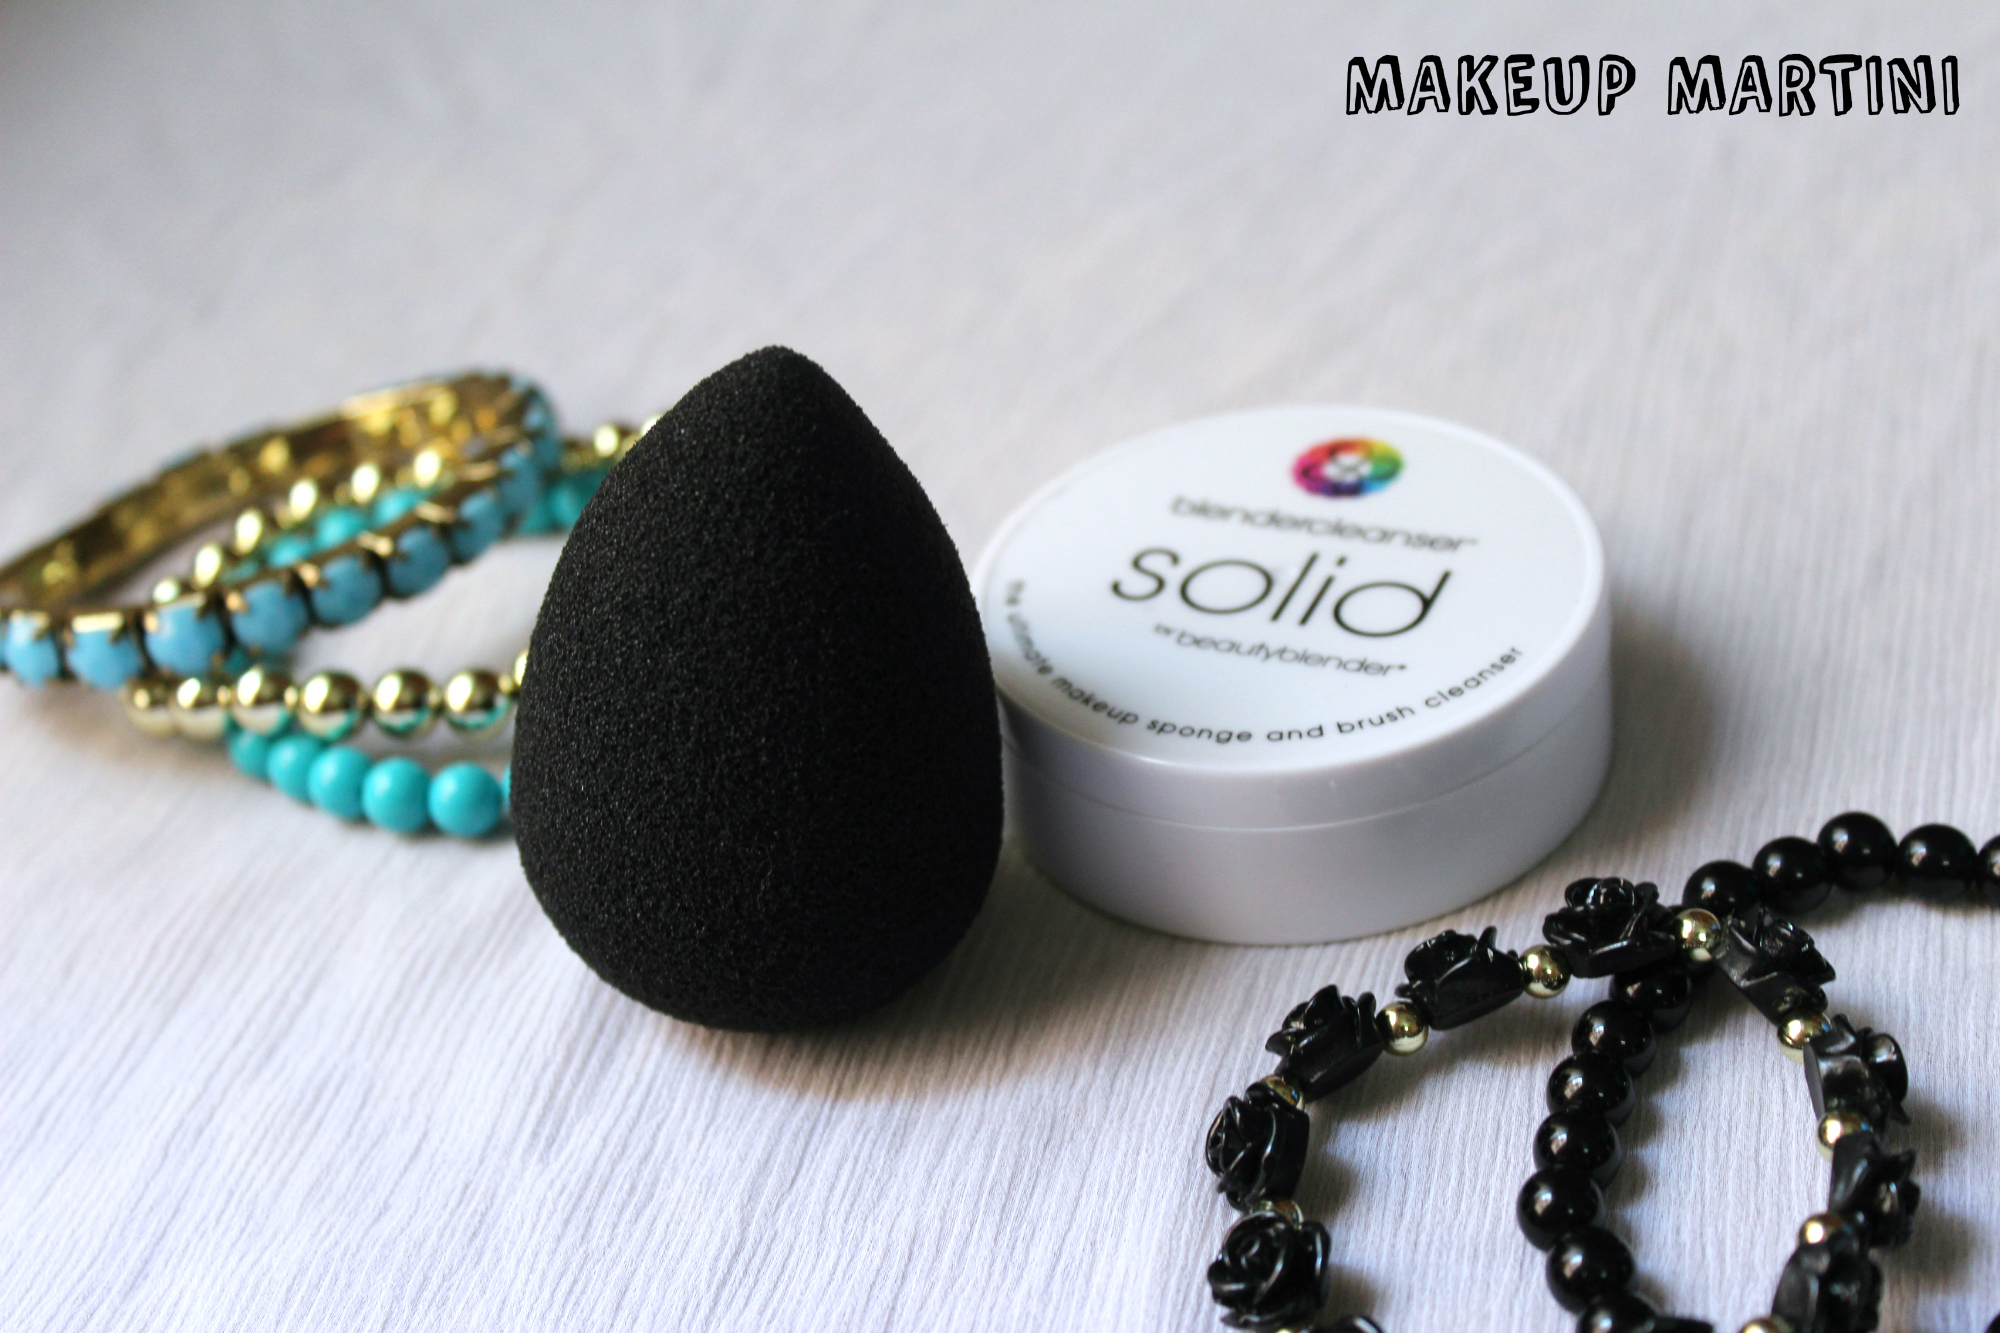 Beauty Blender Pro Sponge Review